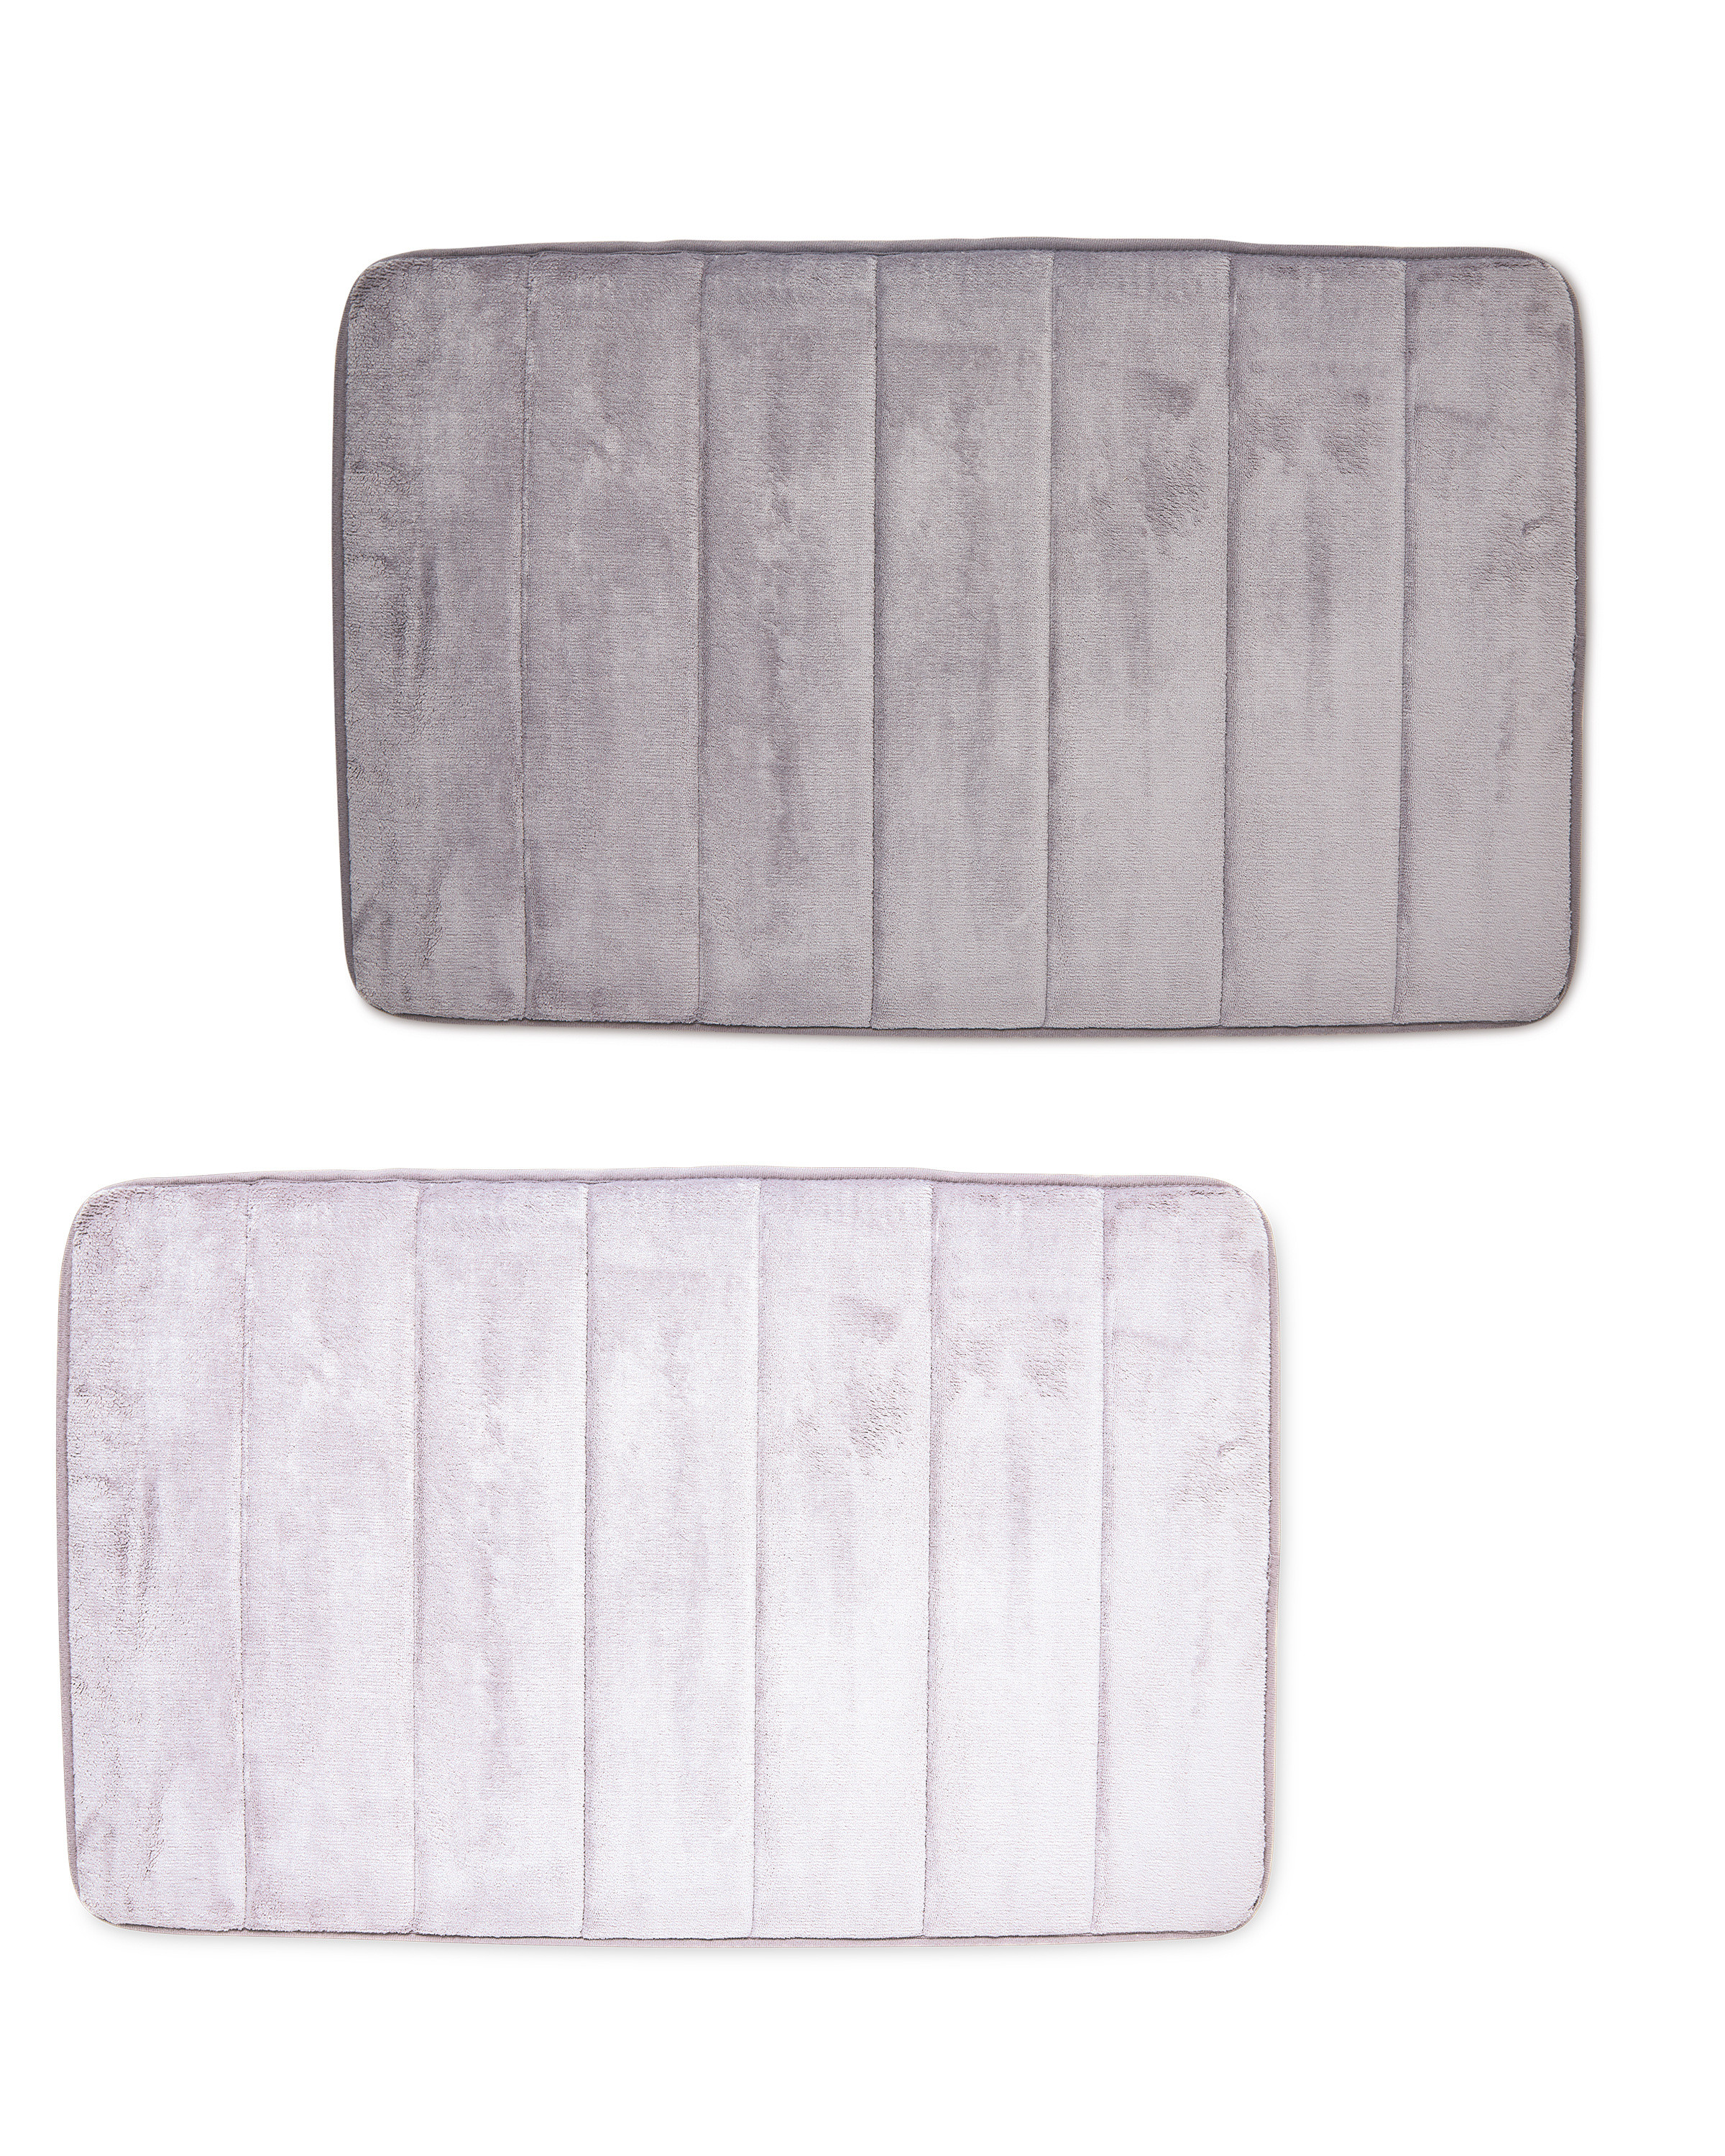 Matt Design Memory Foam Bath Mat Aldi Uk